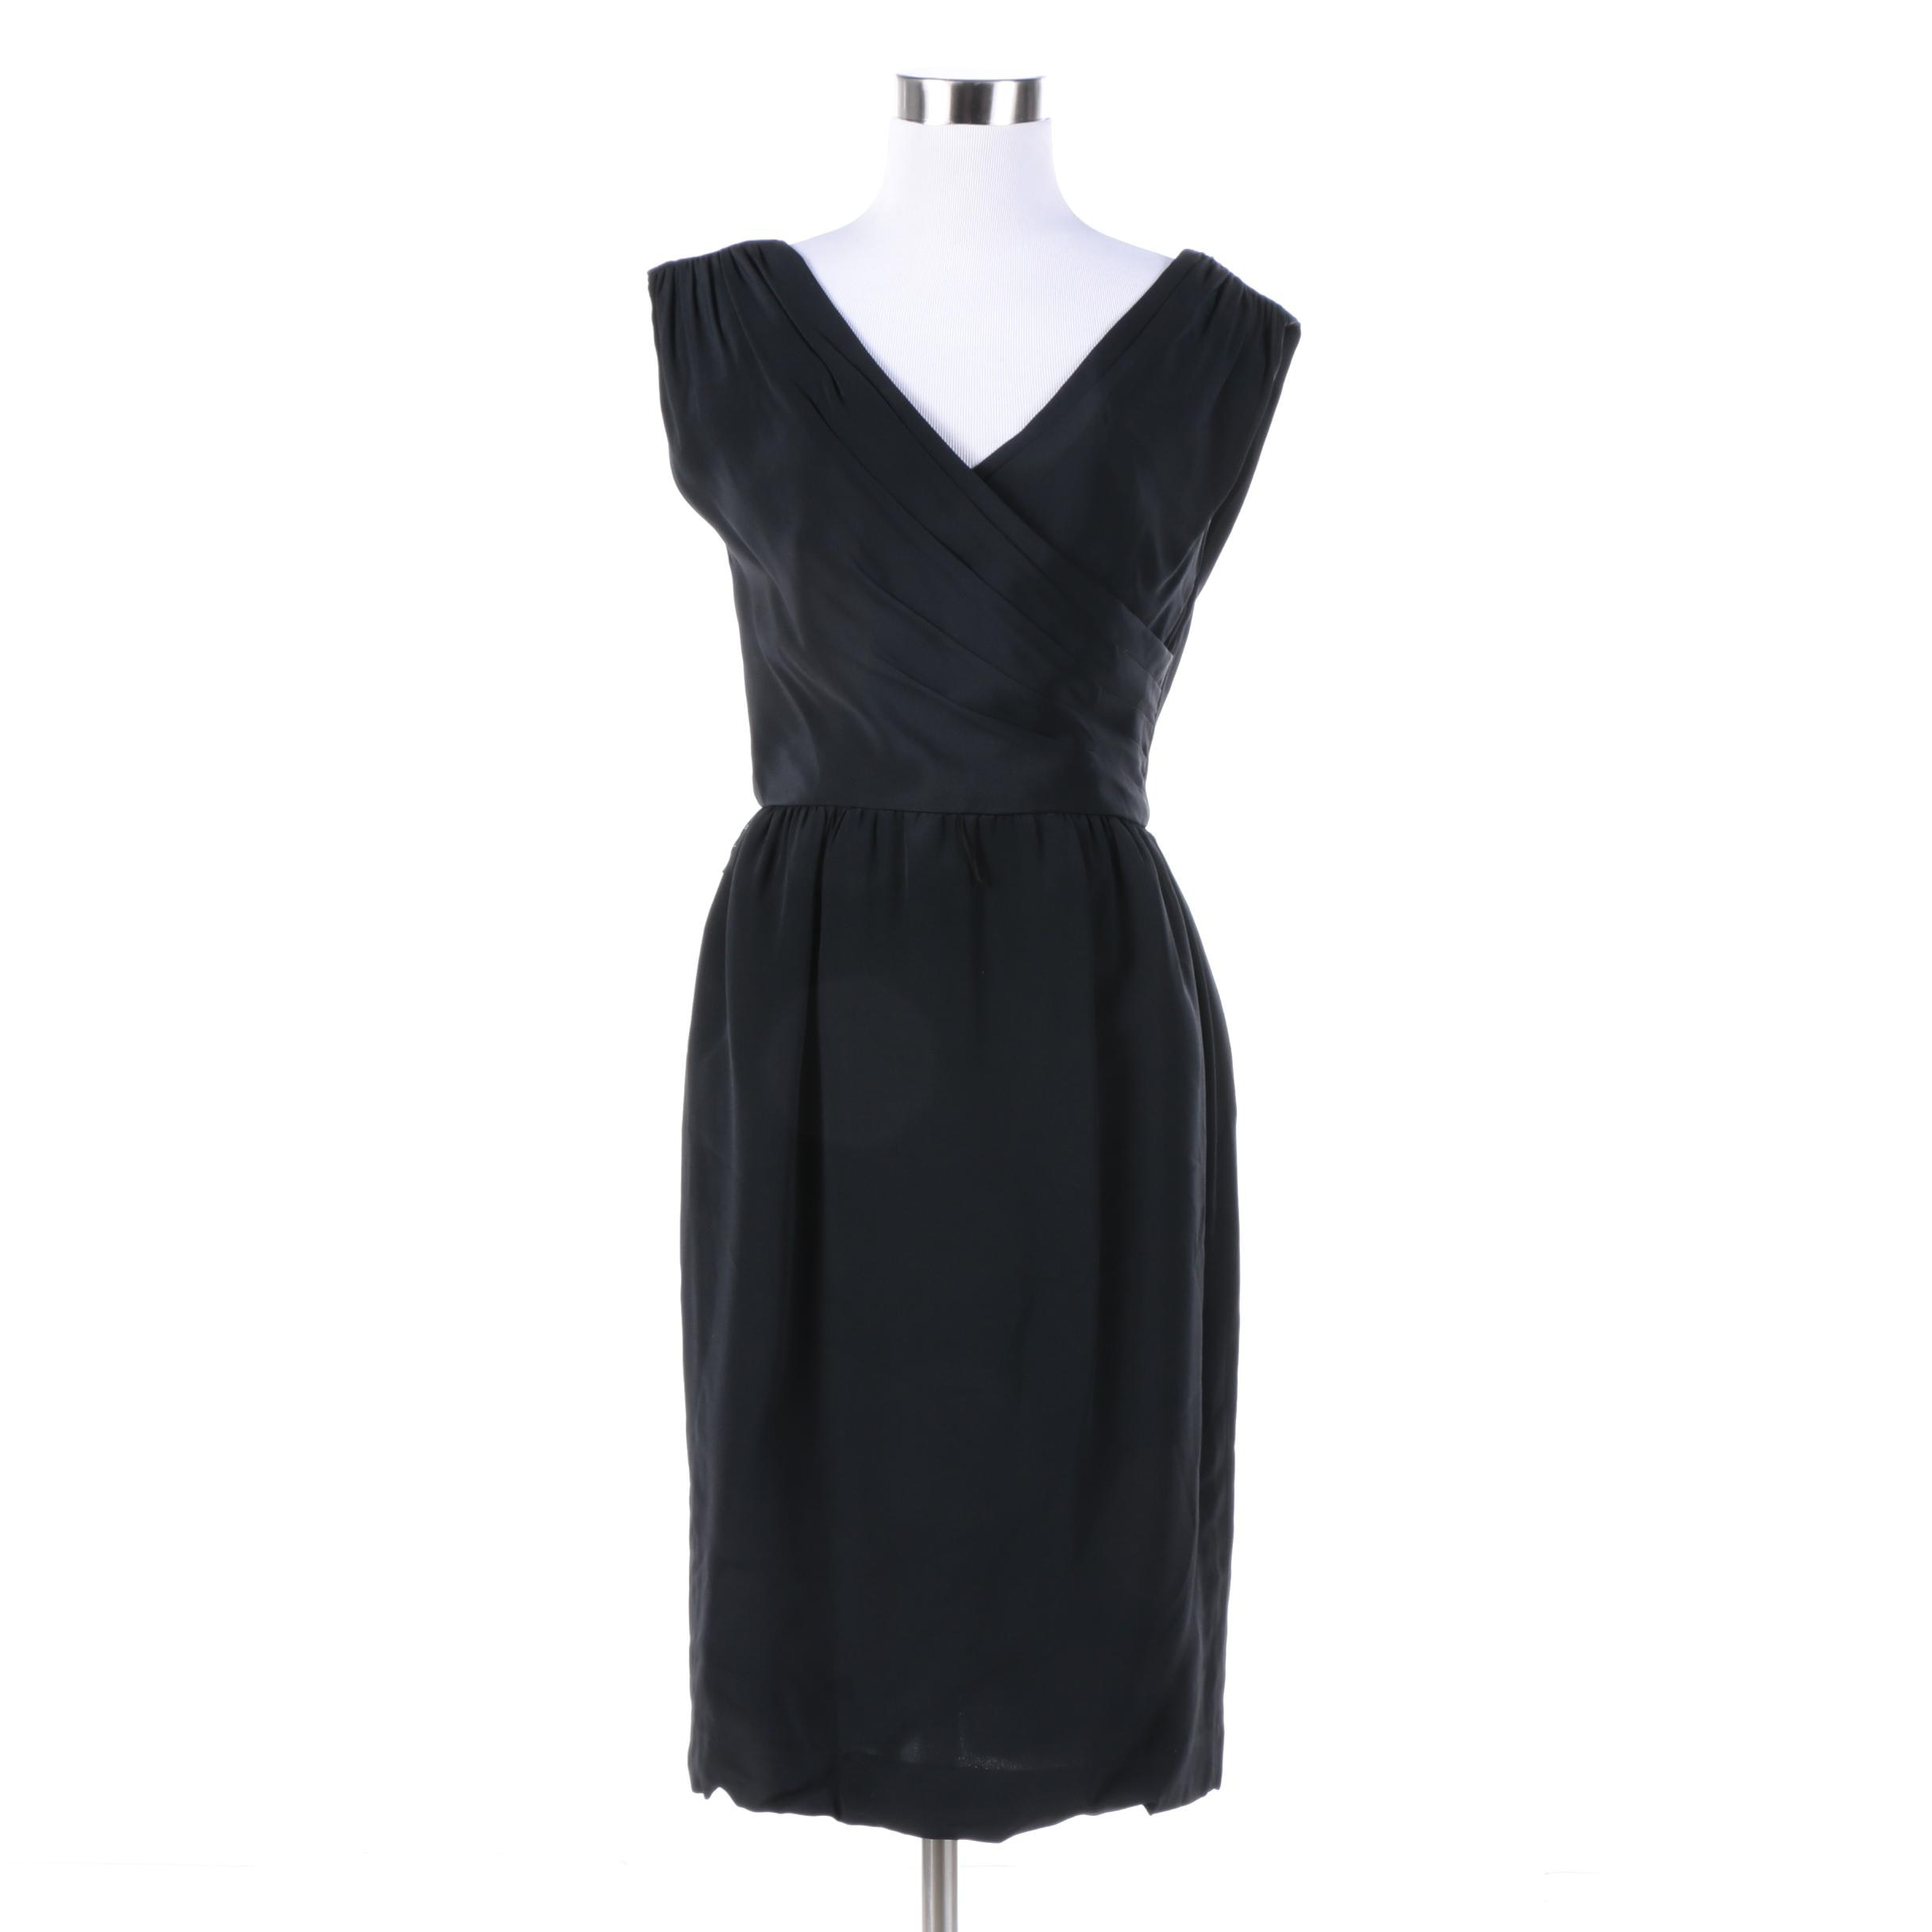 Vintage Liz Claiborne Black Cocktail Dress